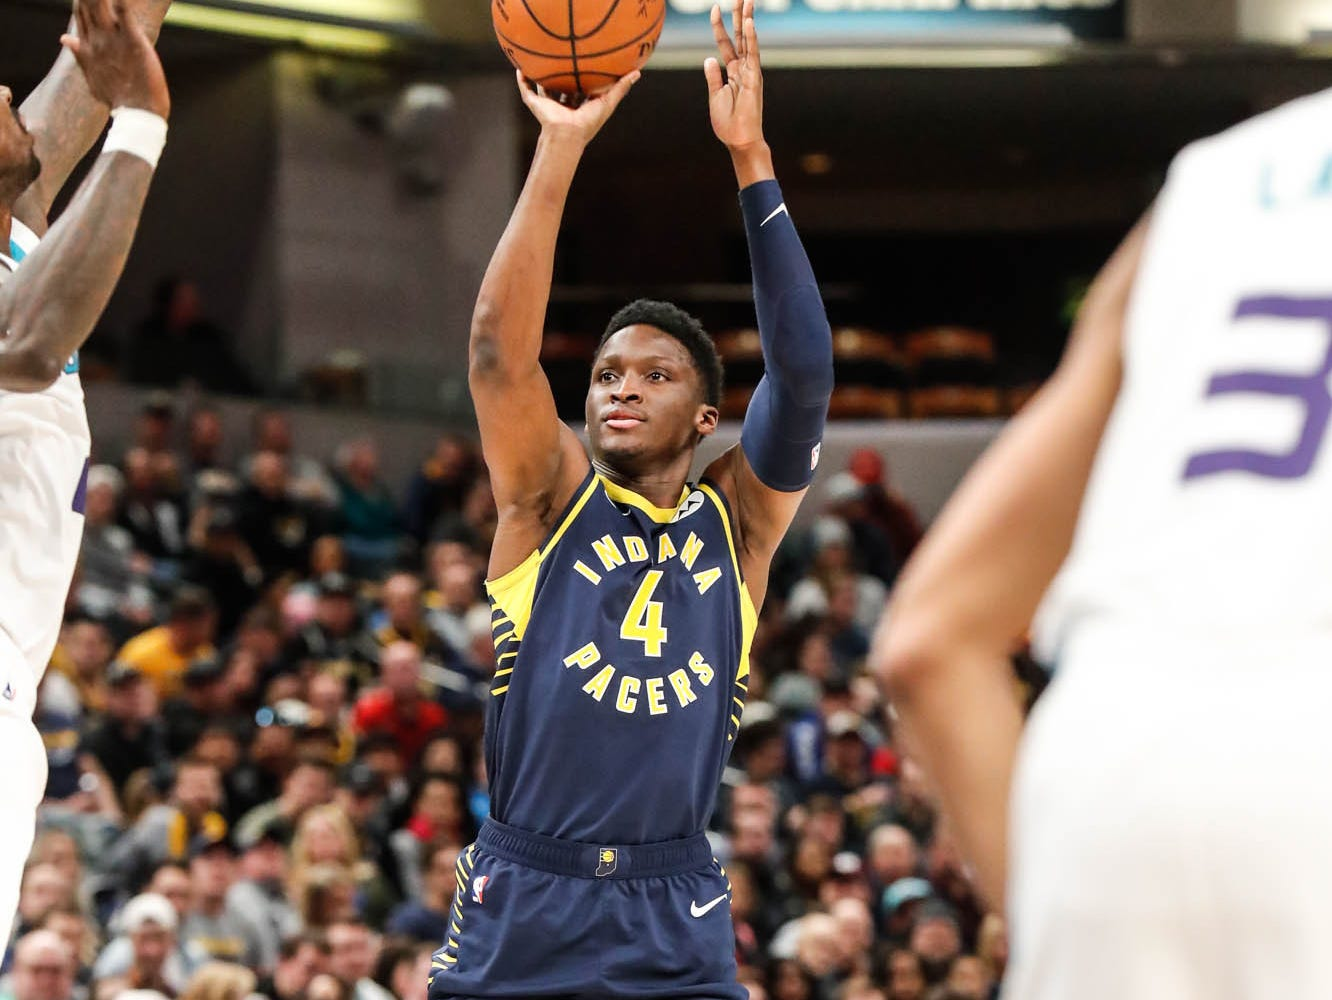 Indiana Pacers guard Victor Oladipo (4) hits nothing but net during a game between the Pacers and Hornets at Bankers Life Fieldhouse on Sunday, Jan. 20, 2019.